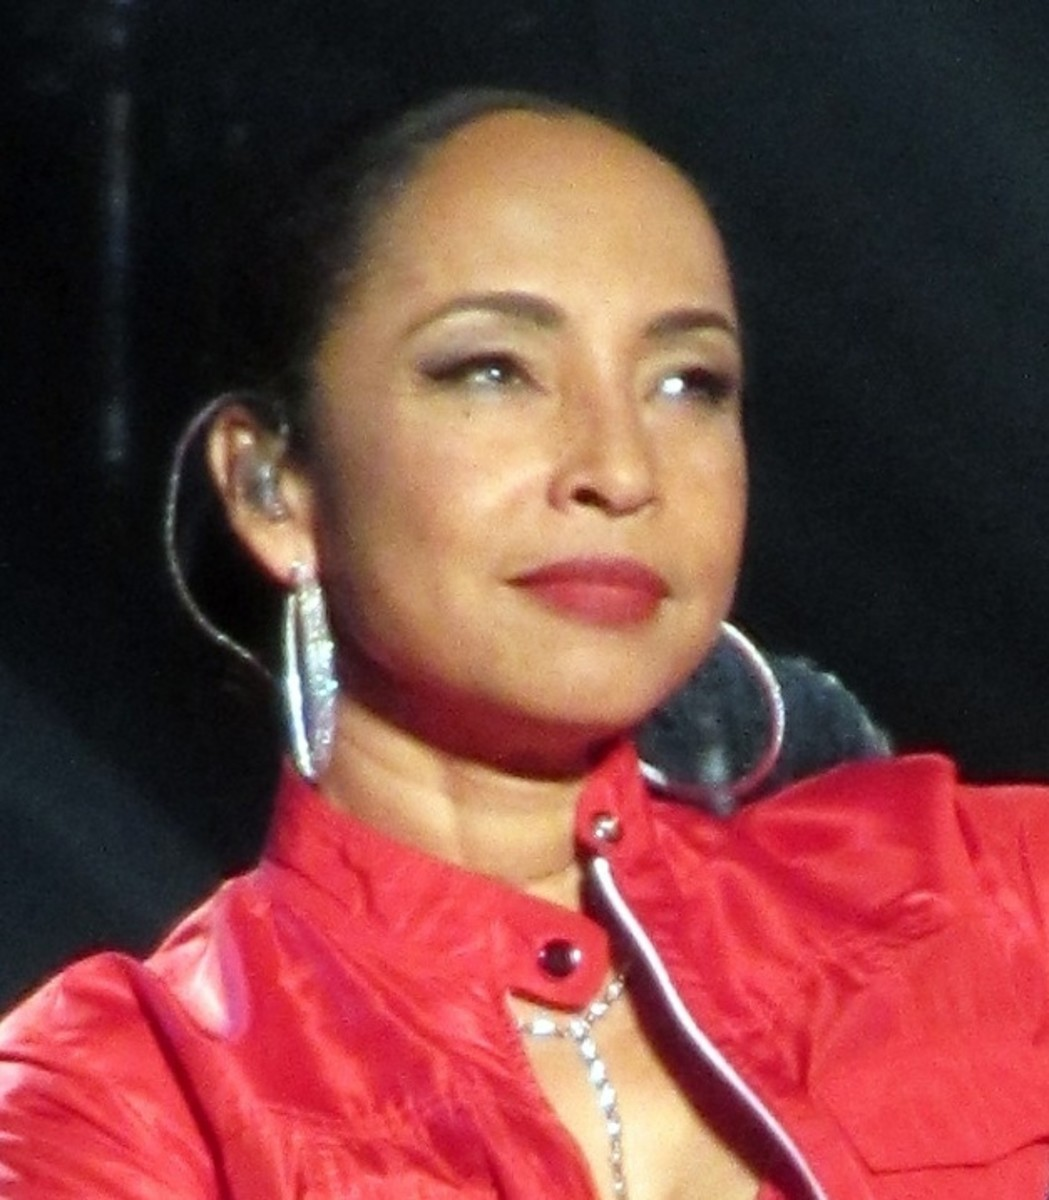 Sade Adu. Celebrities with High Foreheads.